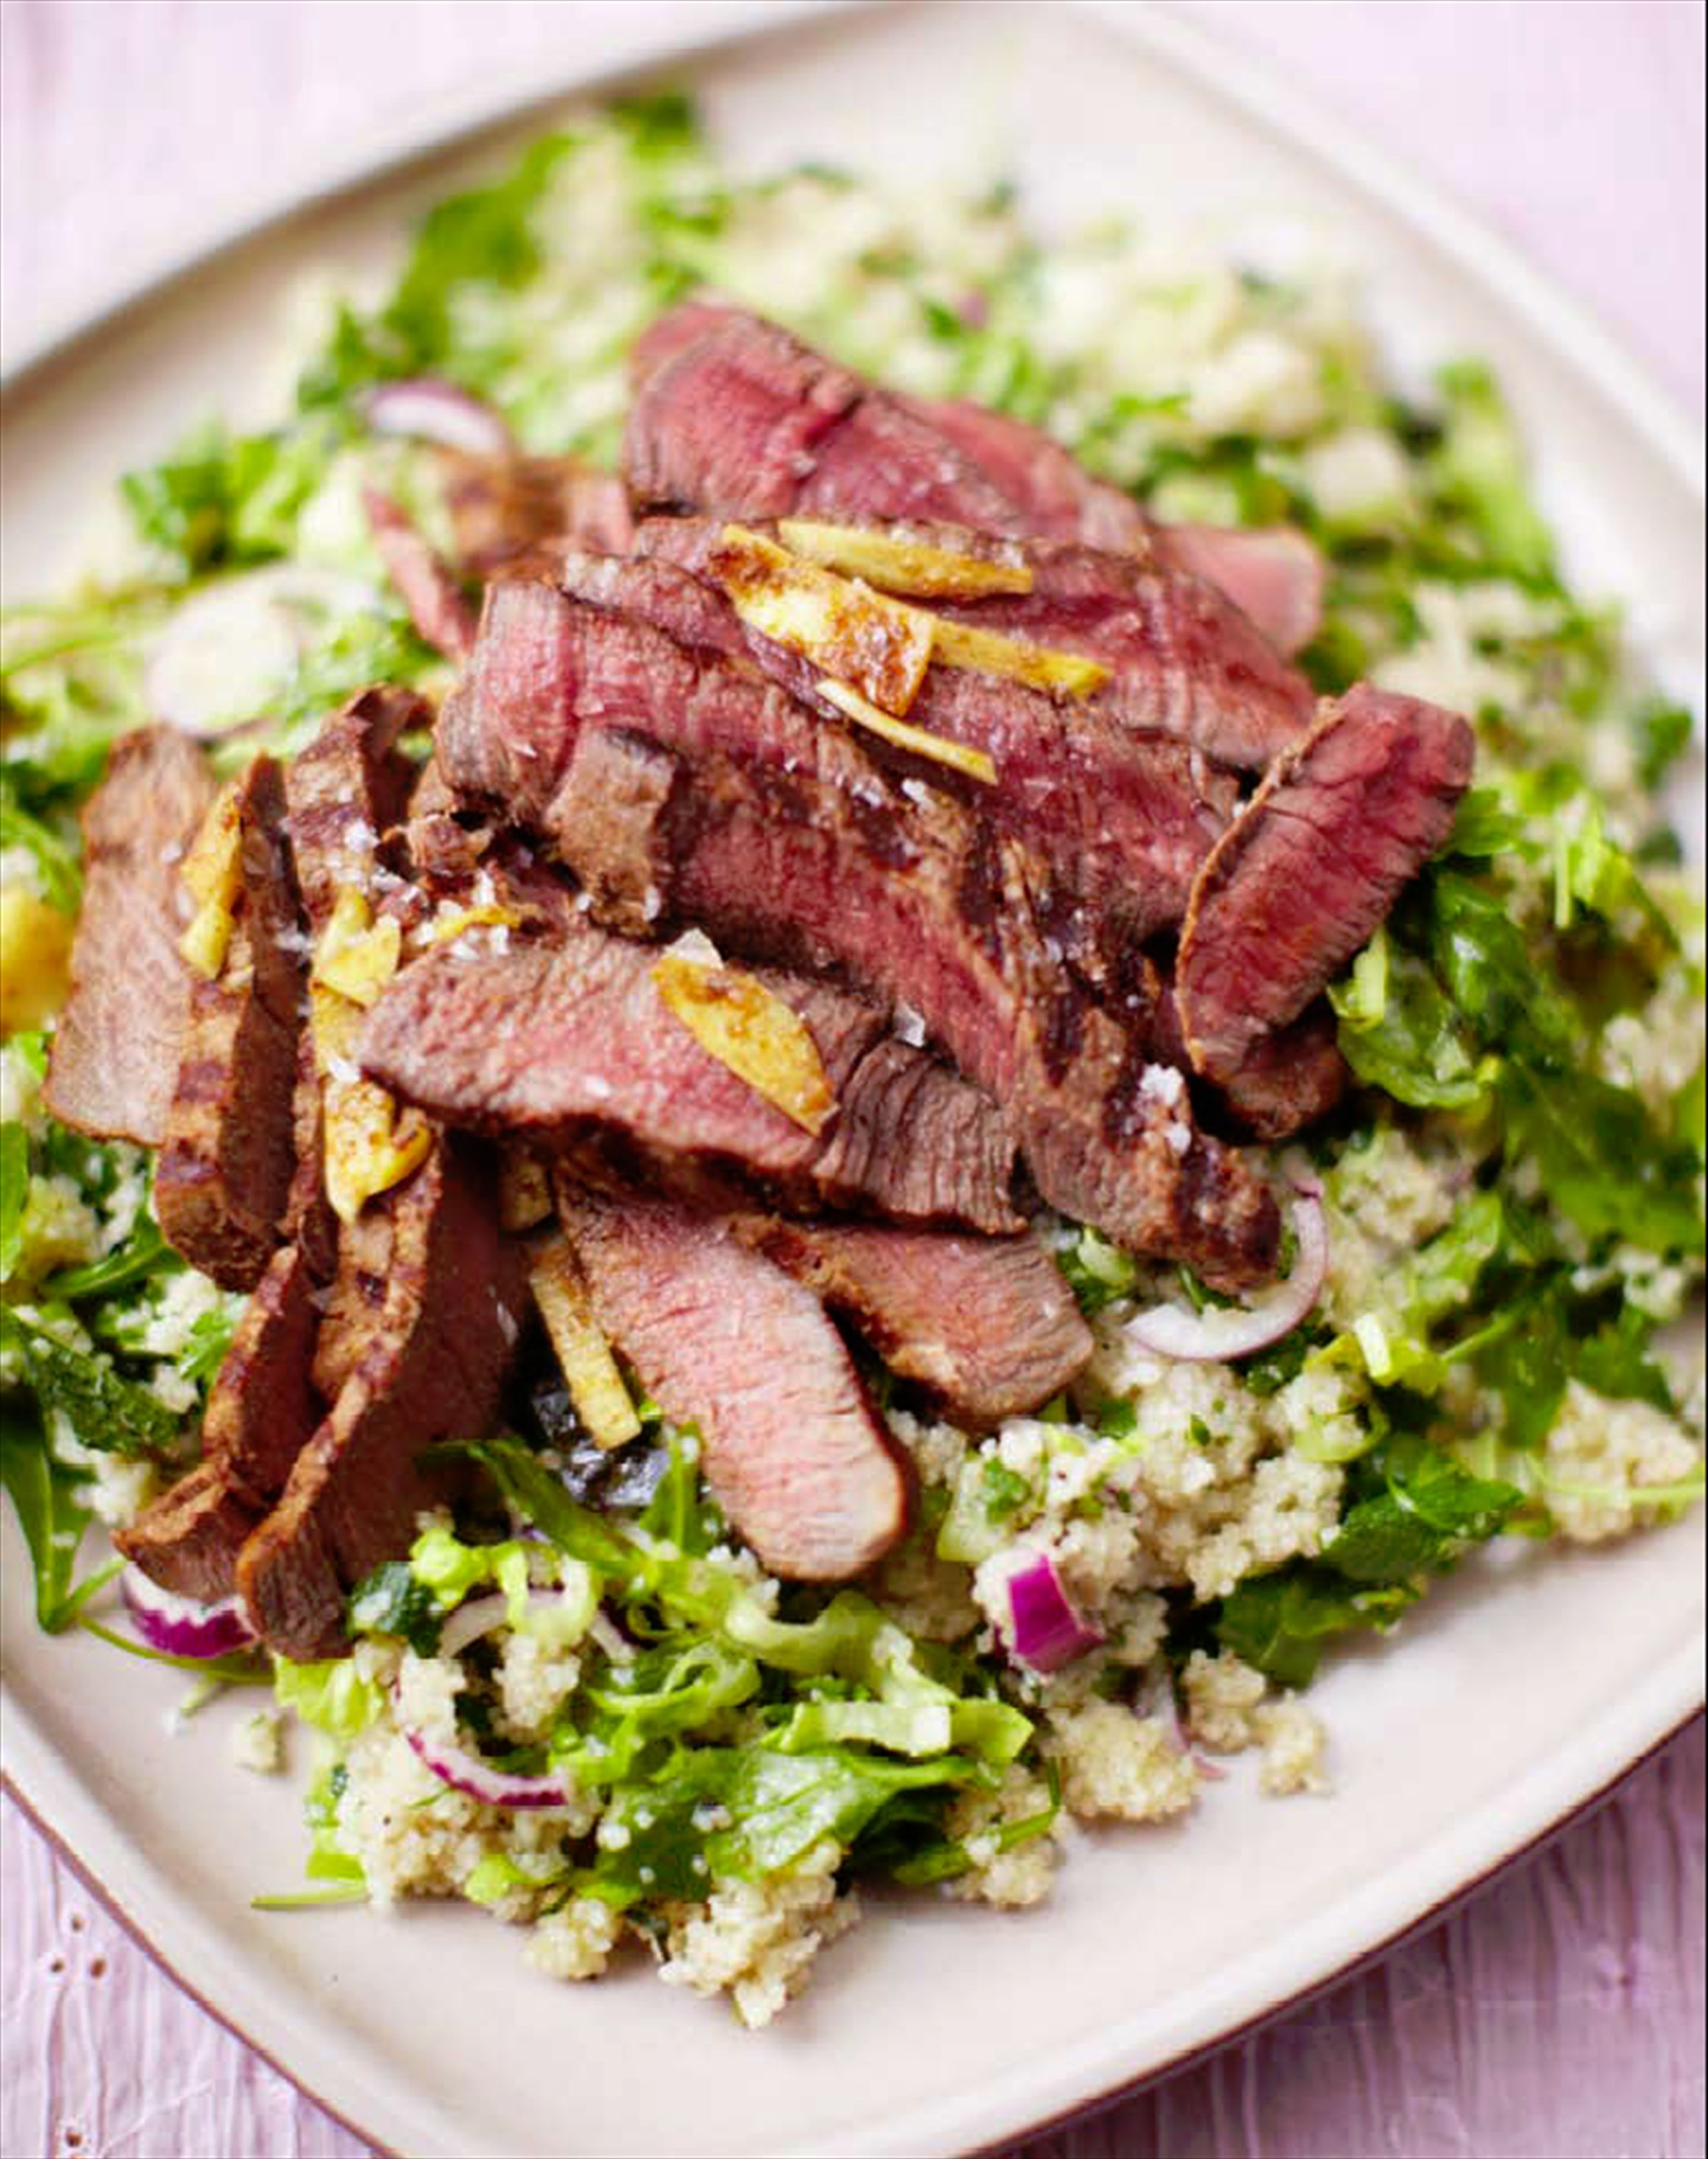 Beef & barley couscous salad